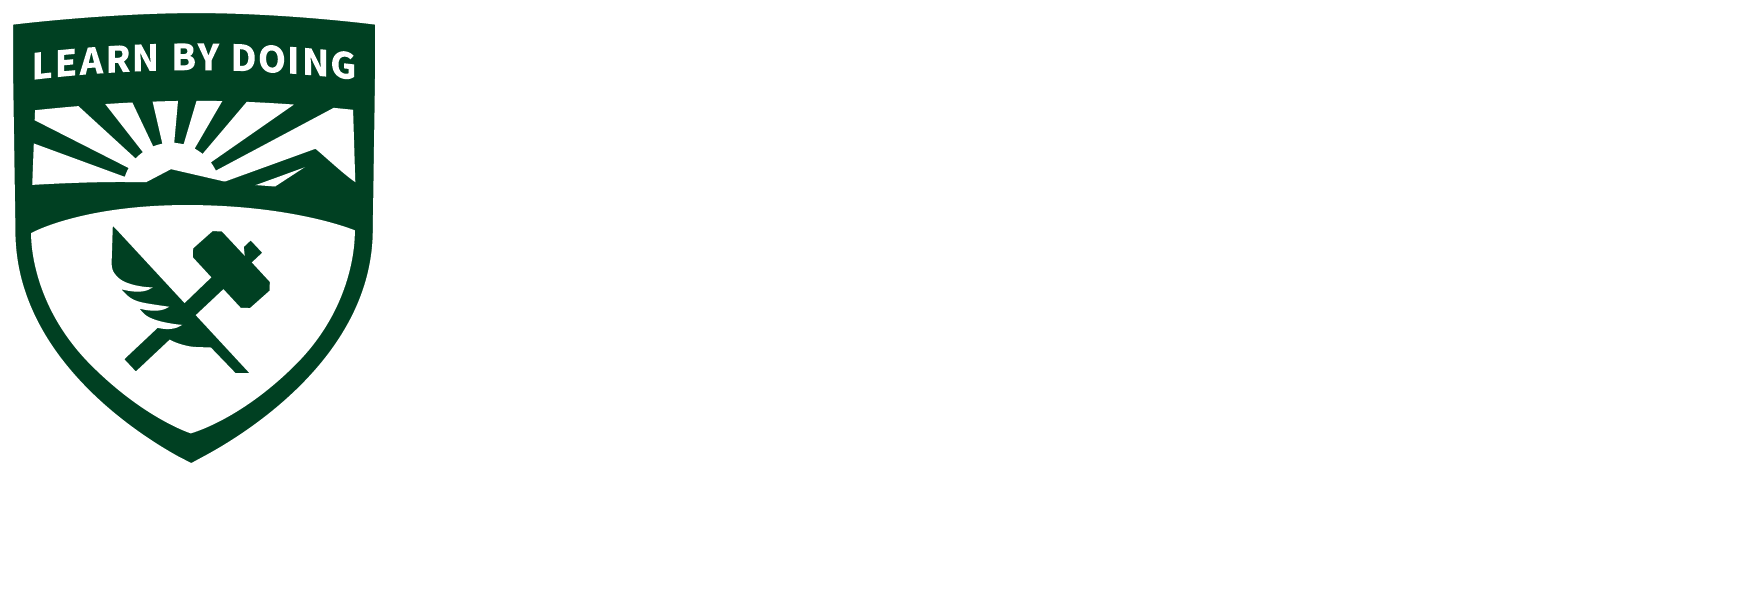 Industrial Technology and Packaging Area – Orfalea College of Business